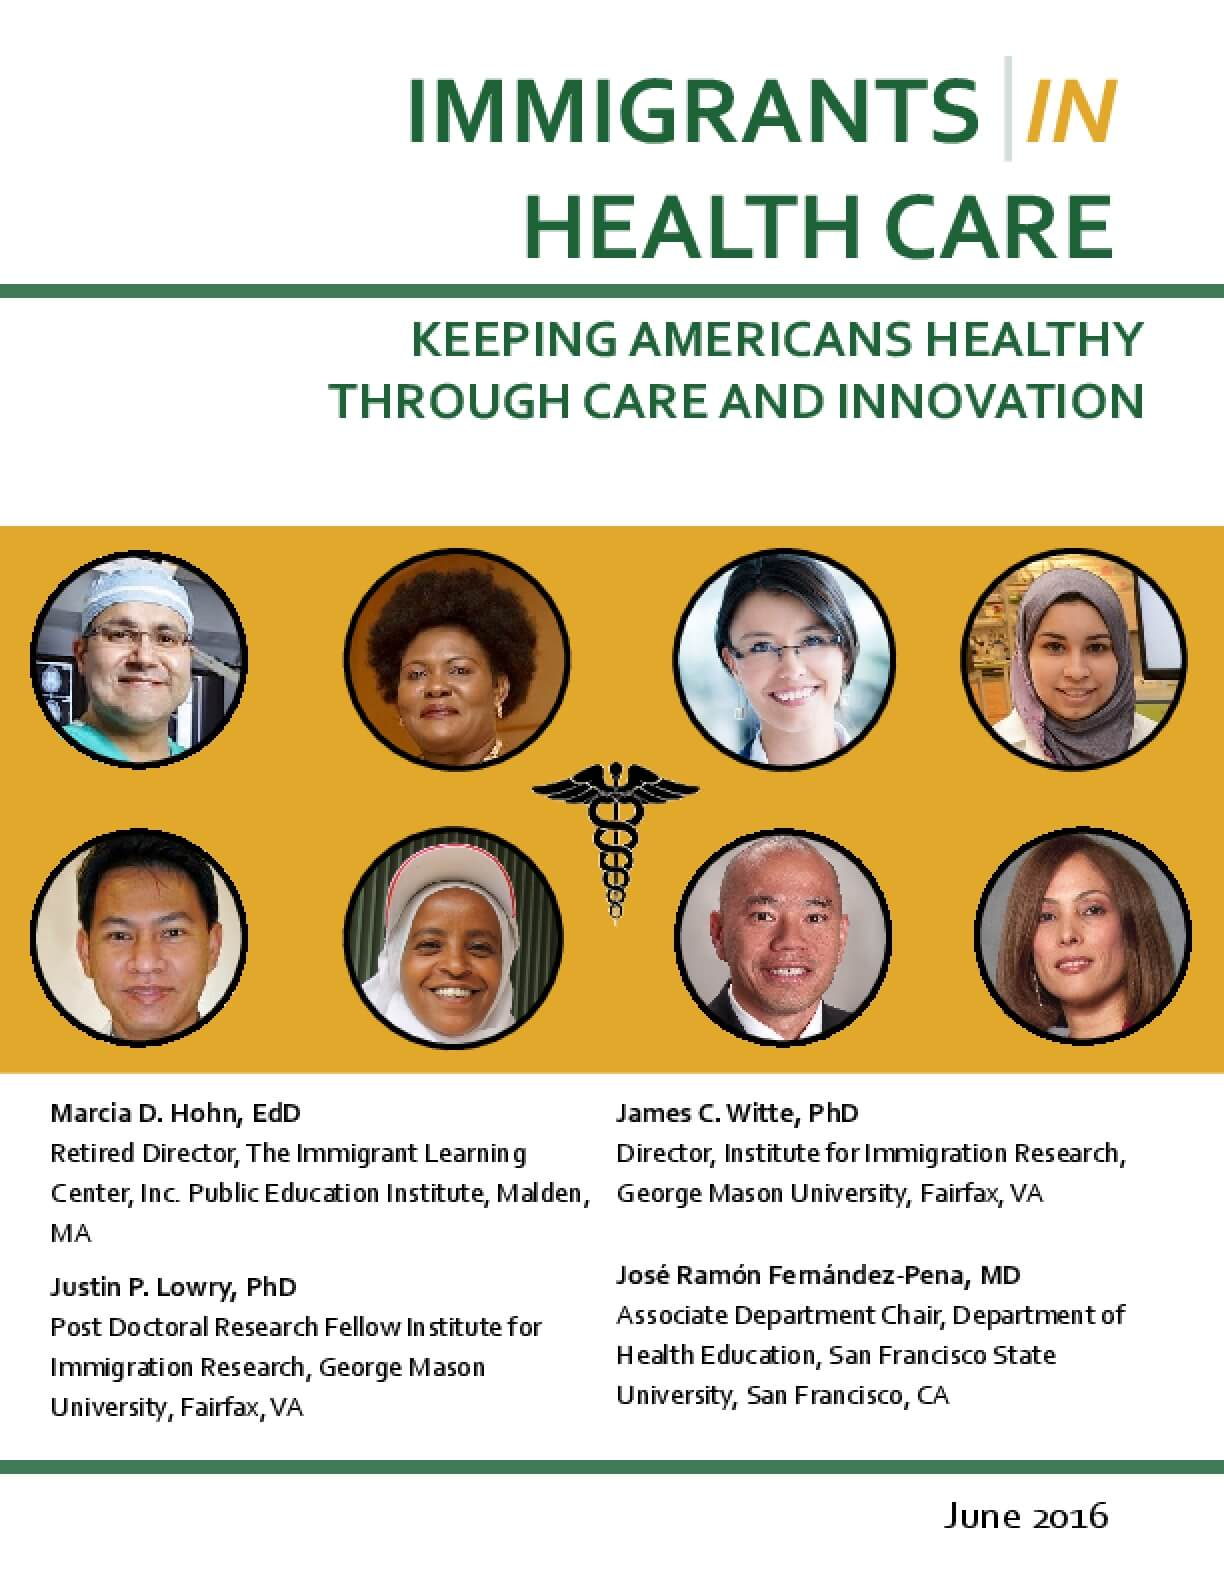 Immigrants in Health Care: Keeping Americans Healthy Through Care and Innovation